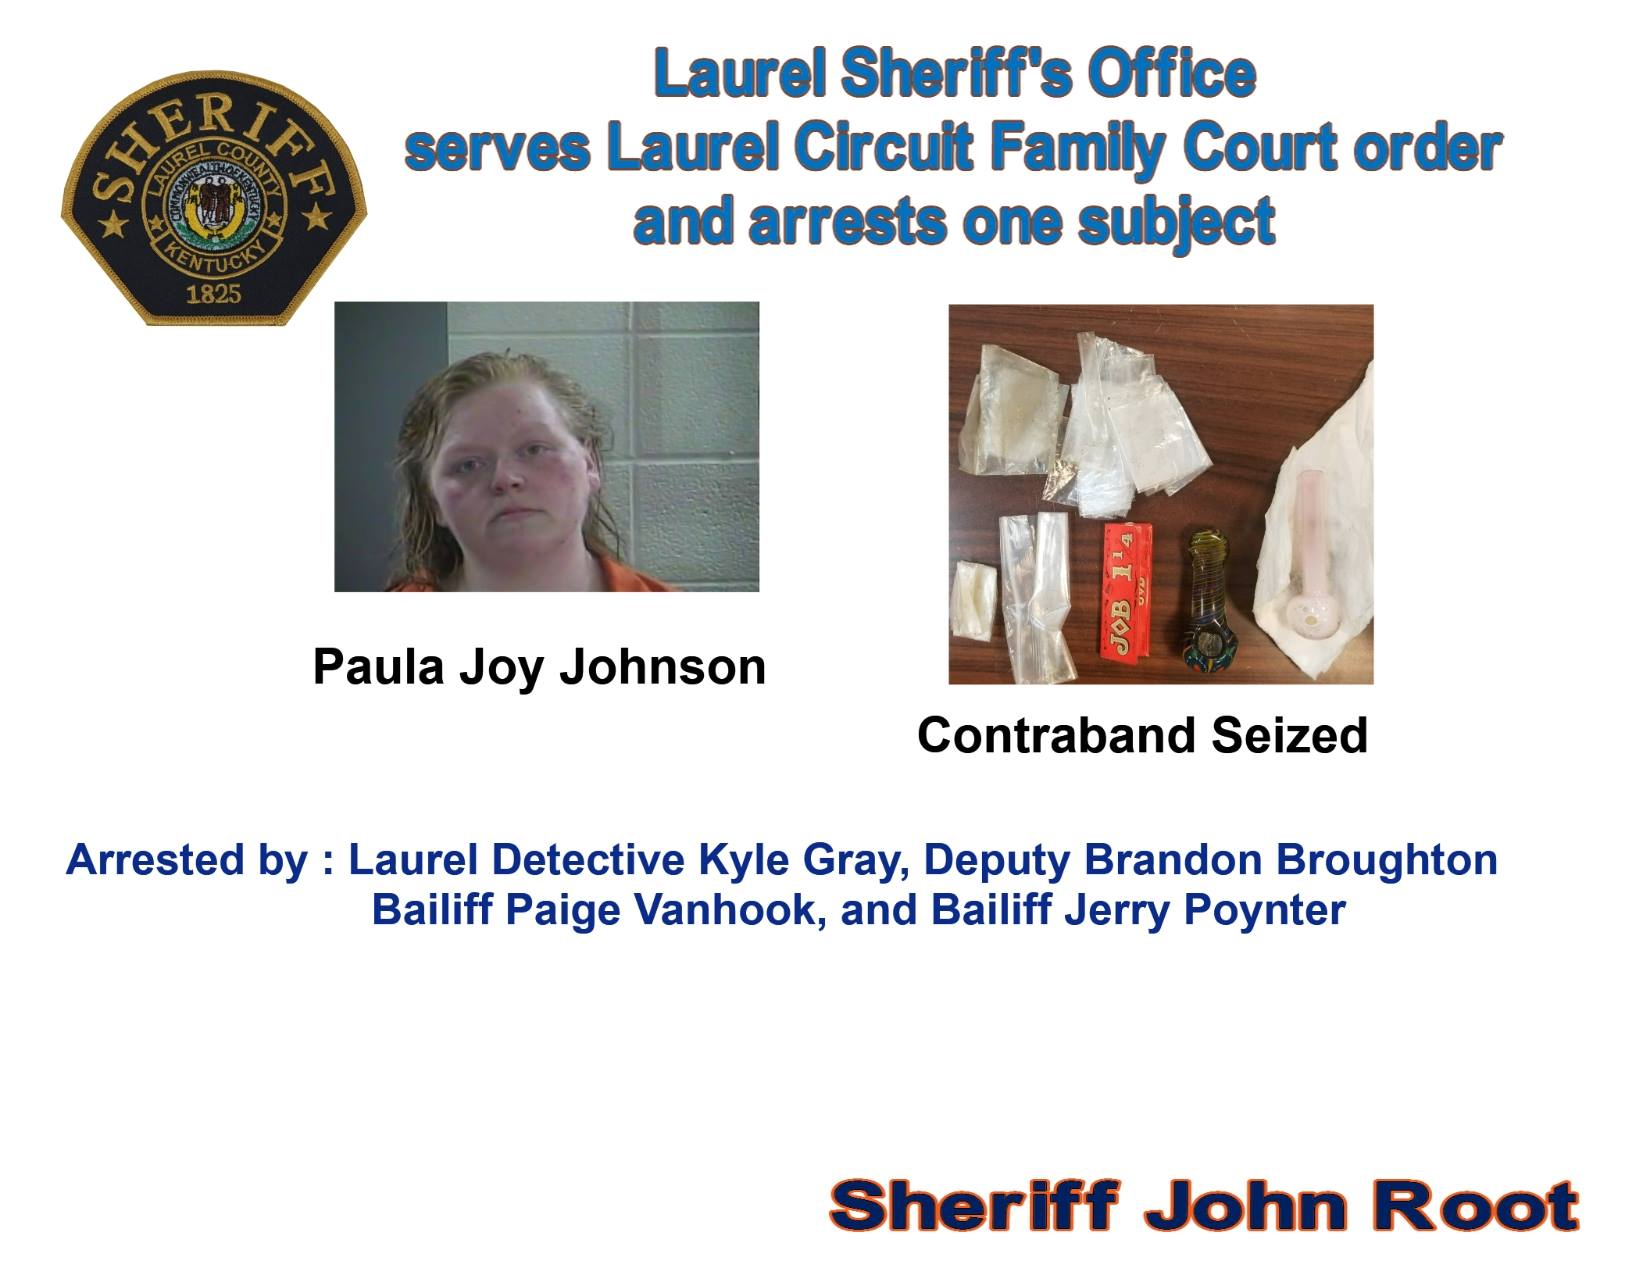 Laurel County Woman Arrested As Authorities Remove Child From Alleged Abusive Home